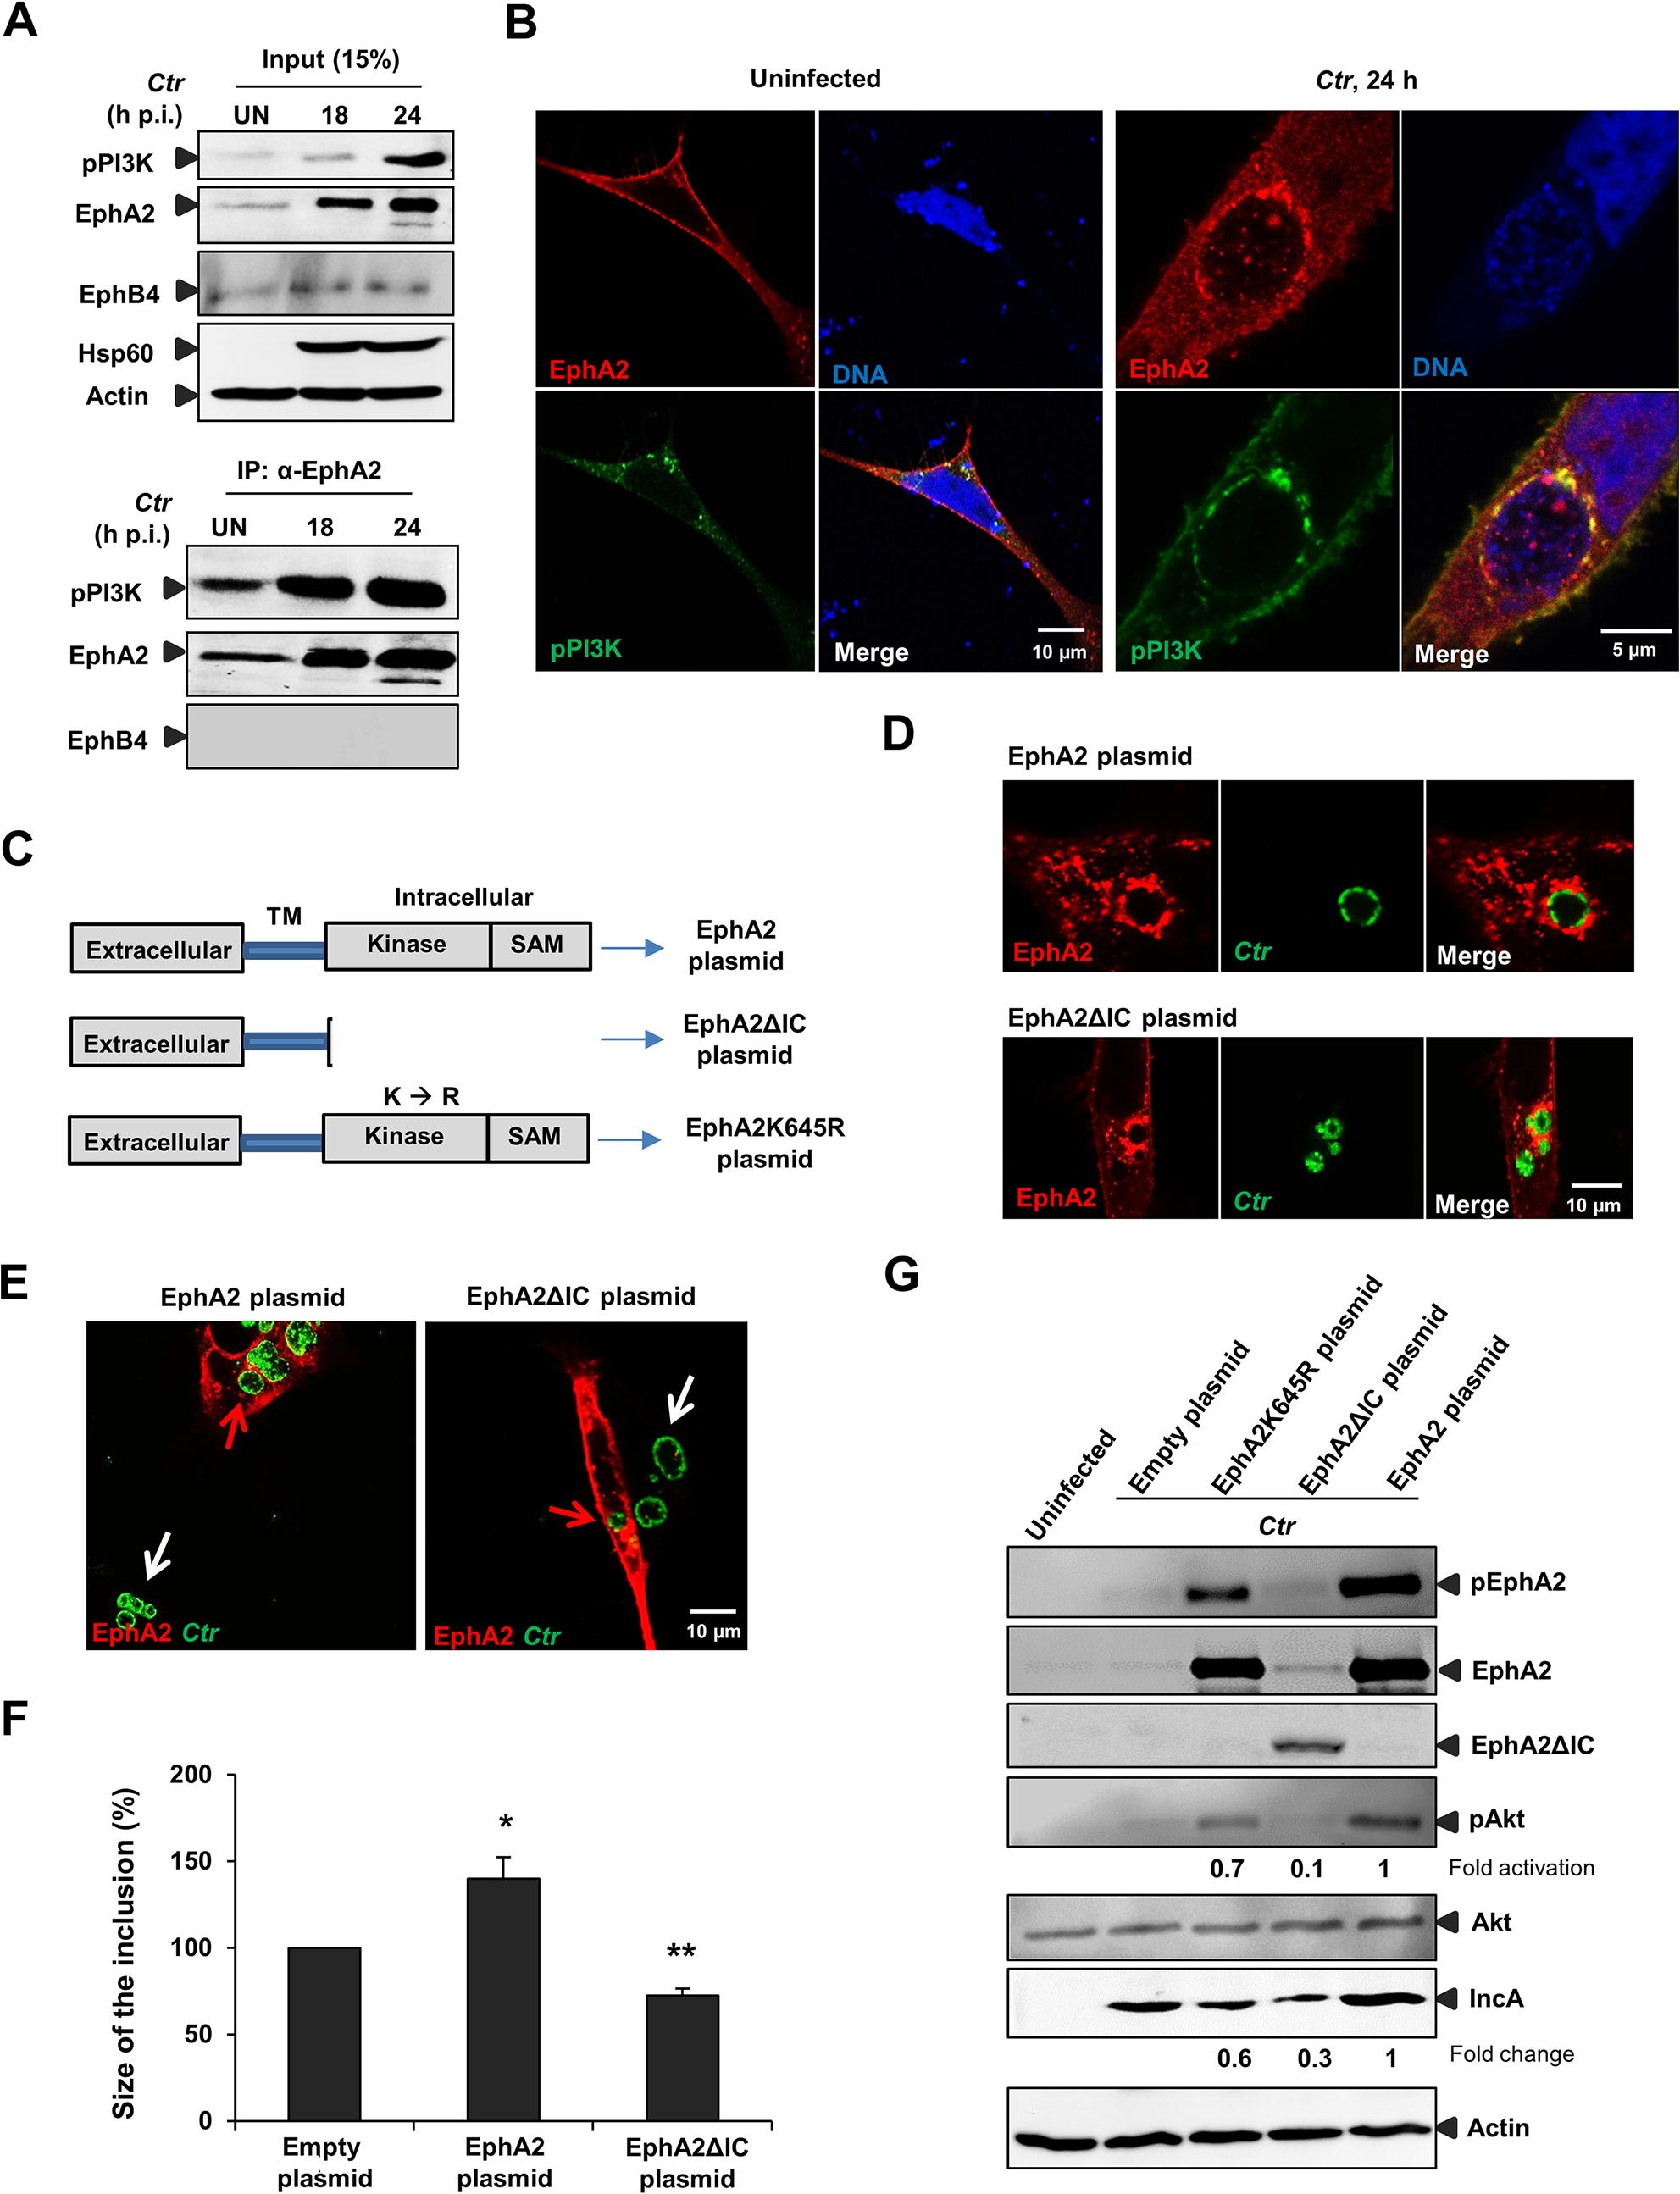 EphA2 intracellular cytoplasmic domain is crucial for <i>Ctr</i> infection.